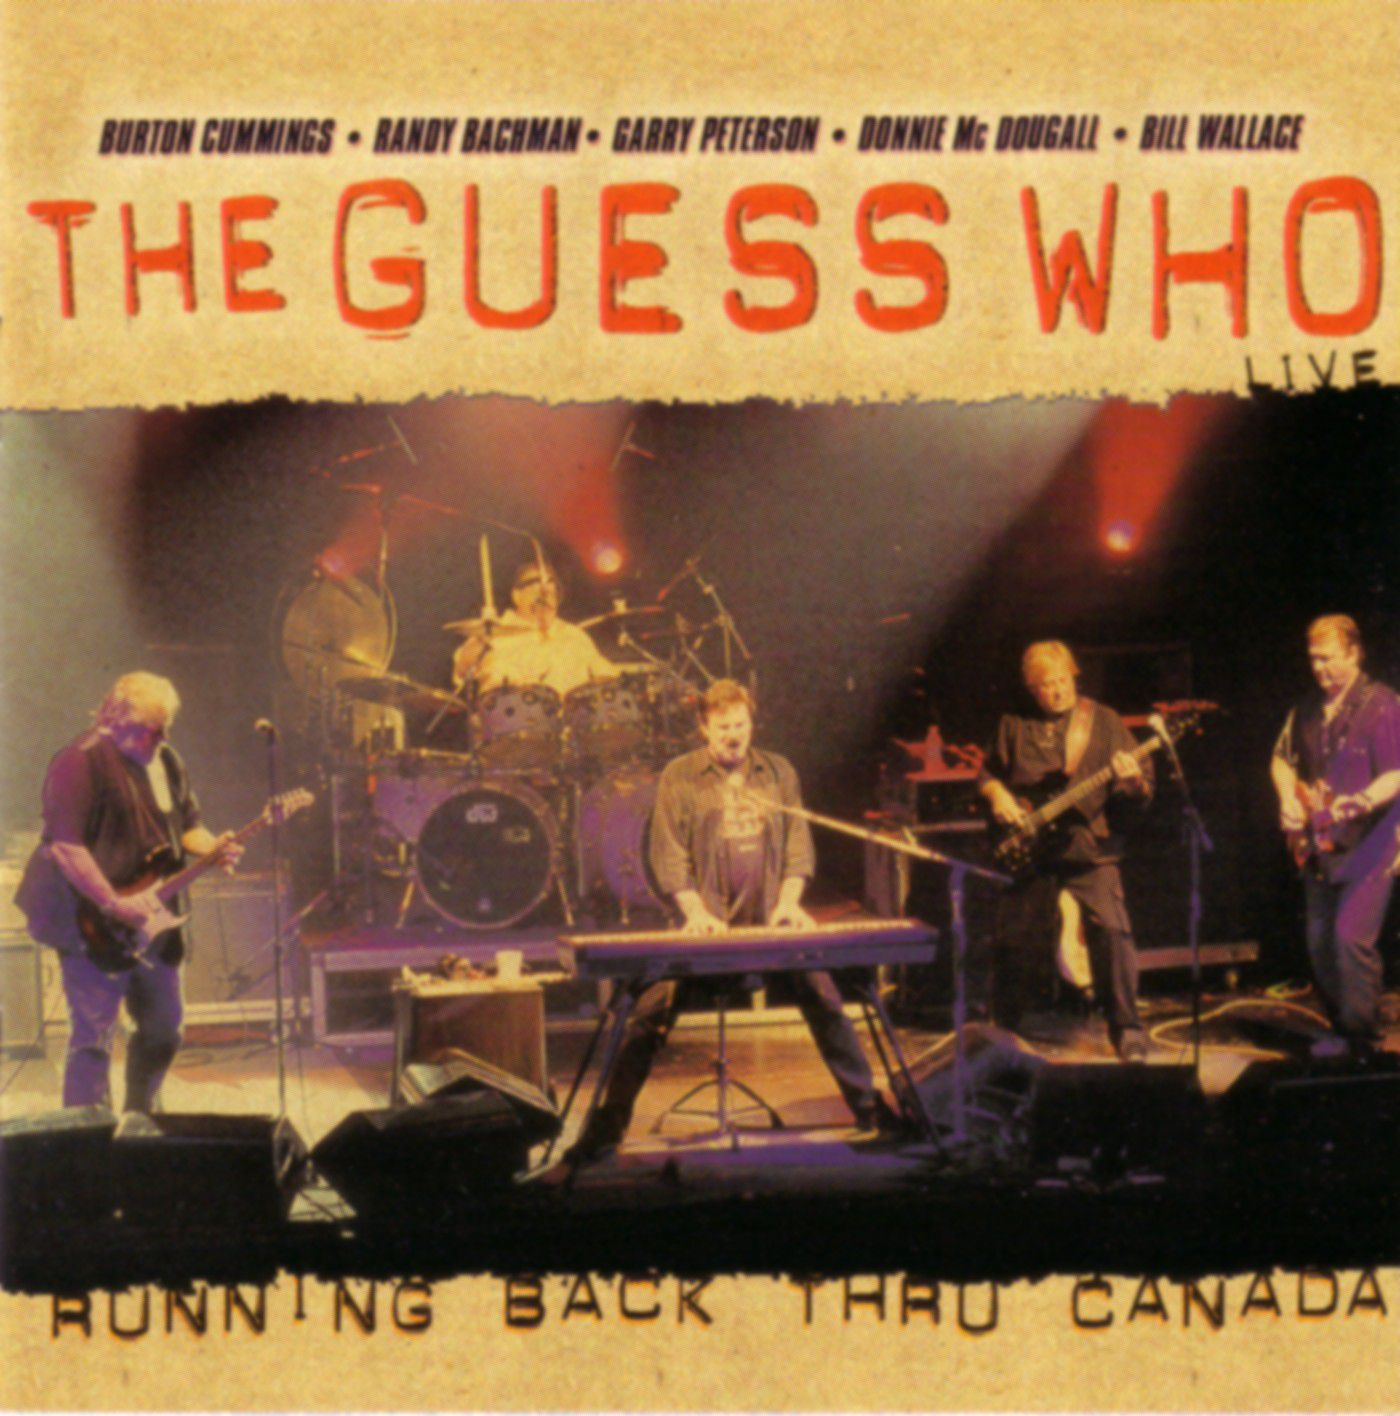 Guess Who - Running Back Through Canada